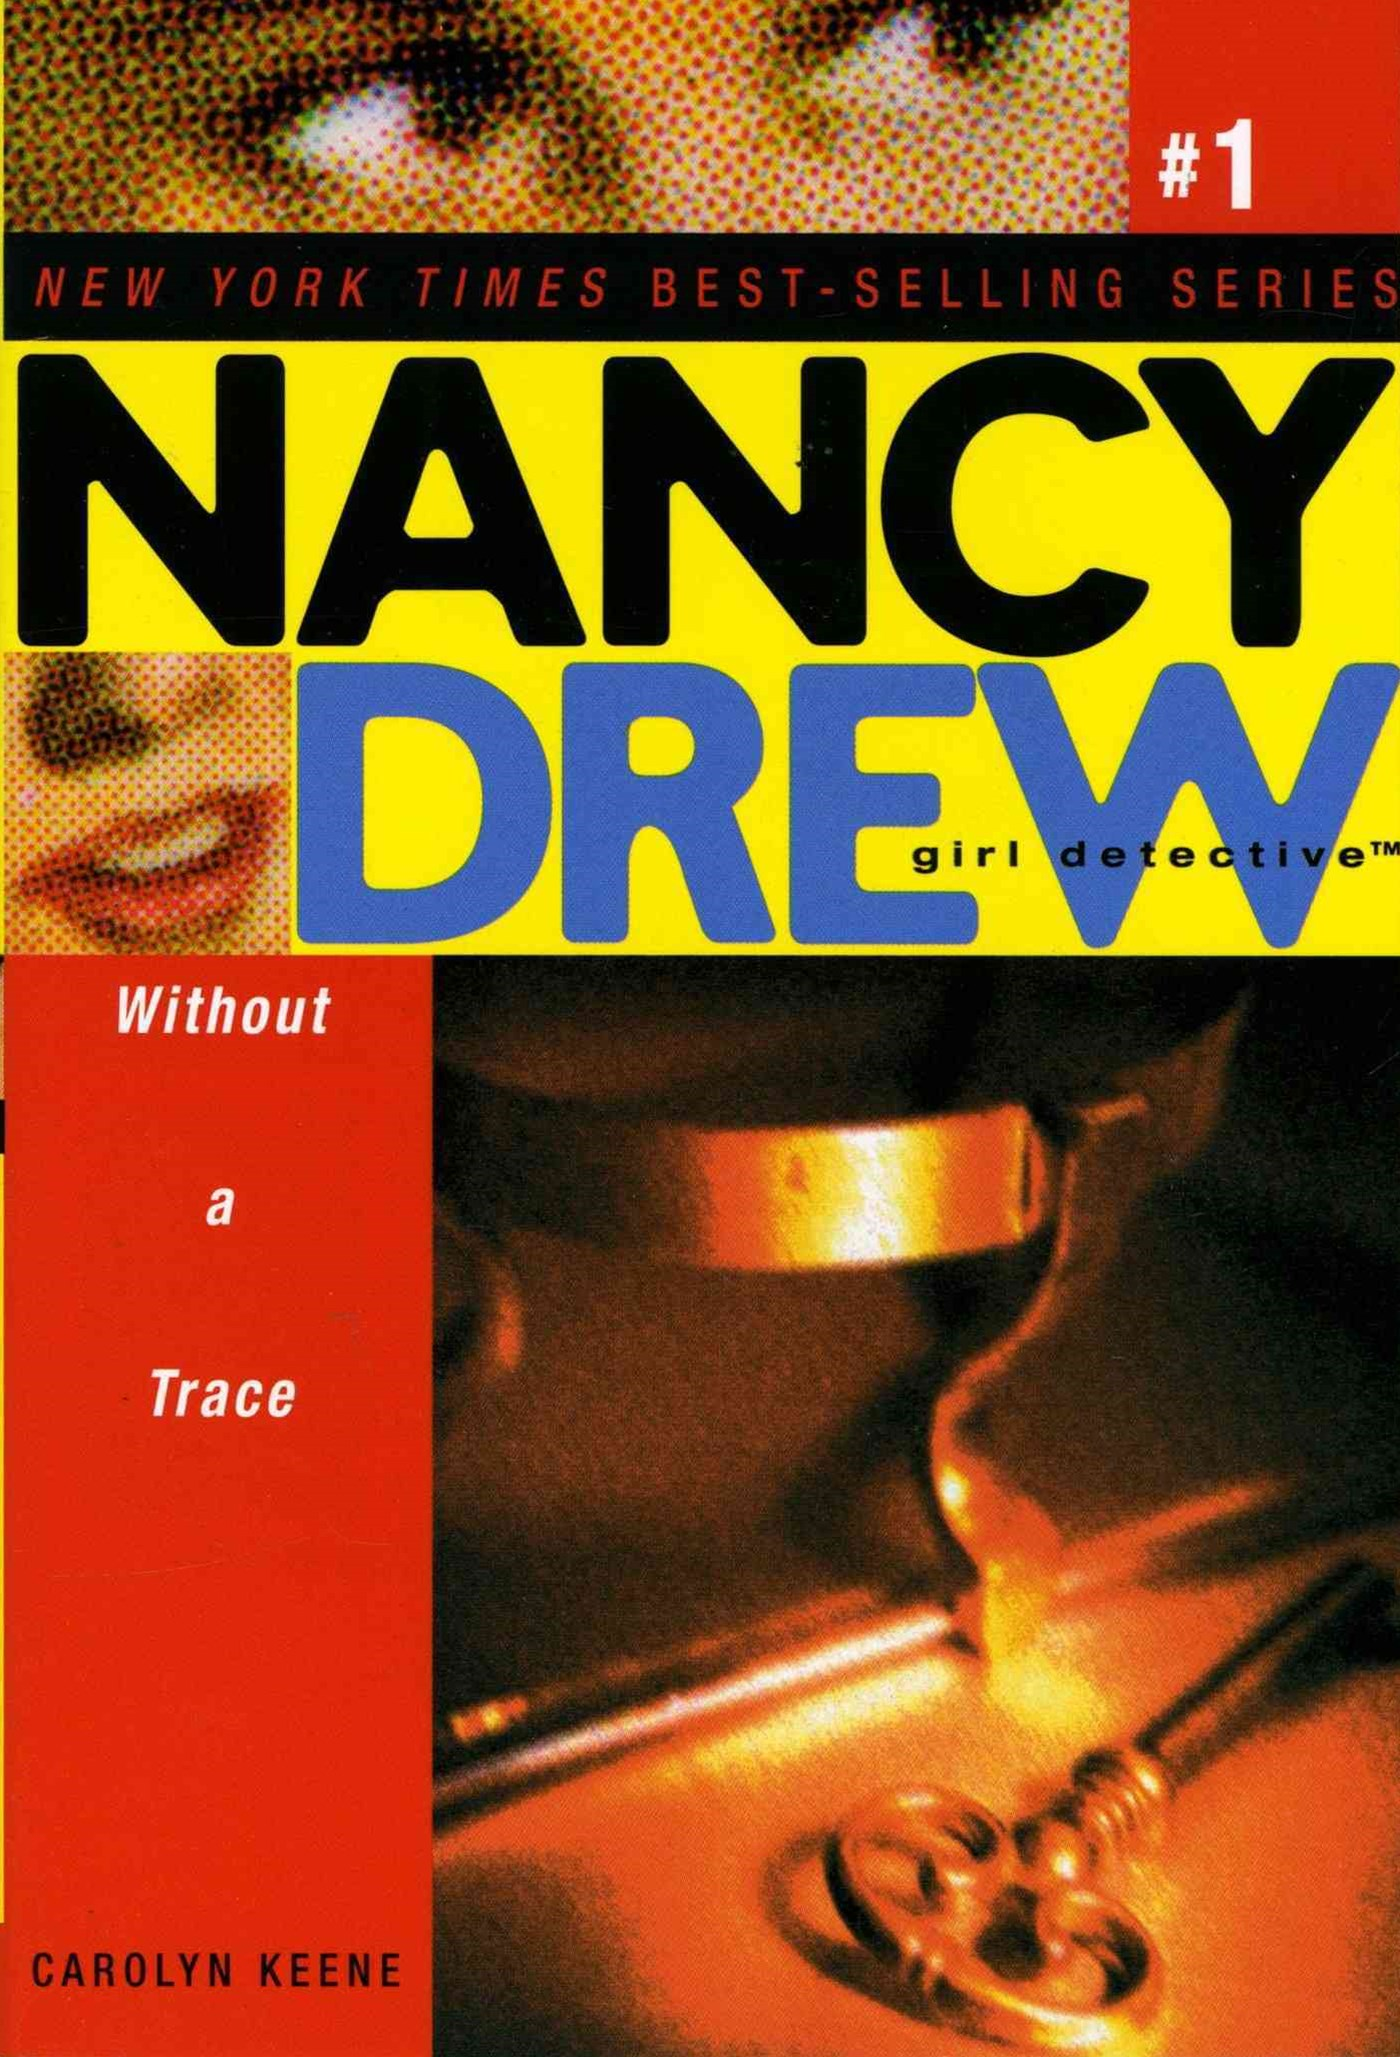 Nancy Drew Girl Detective #1: Without a Trace: Nancy Drew